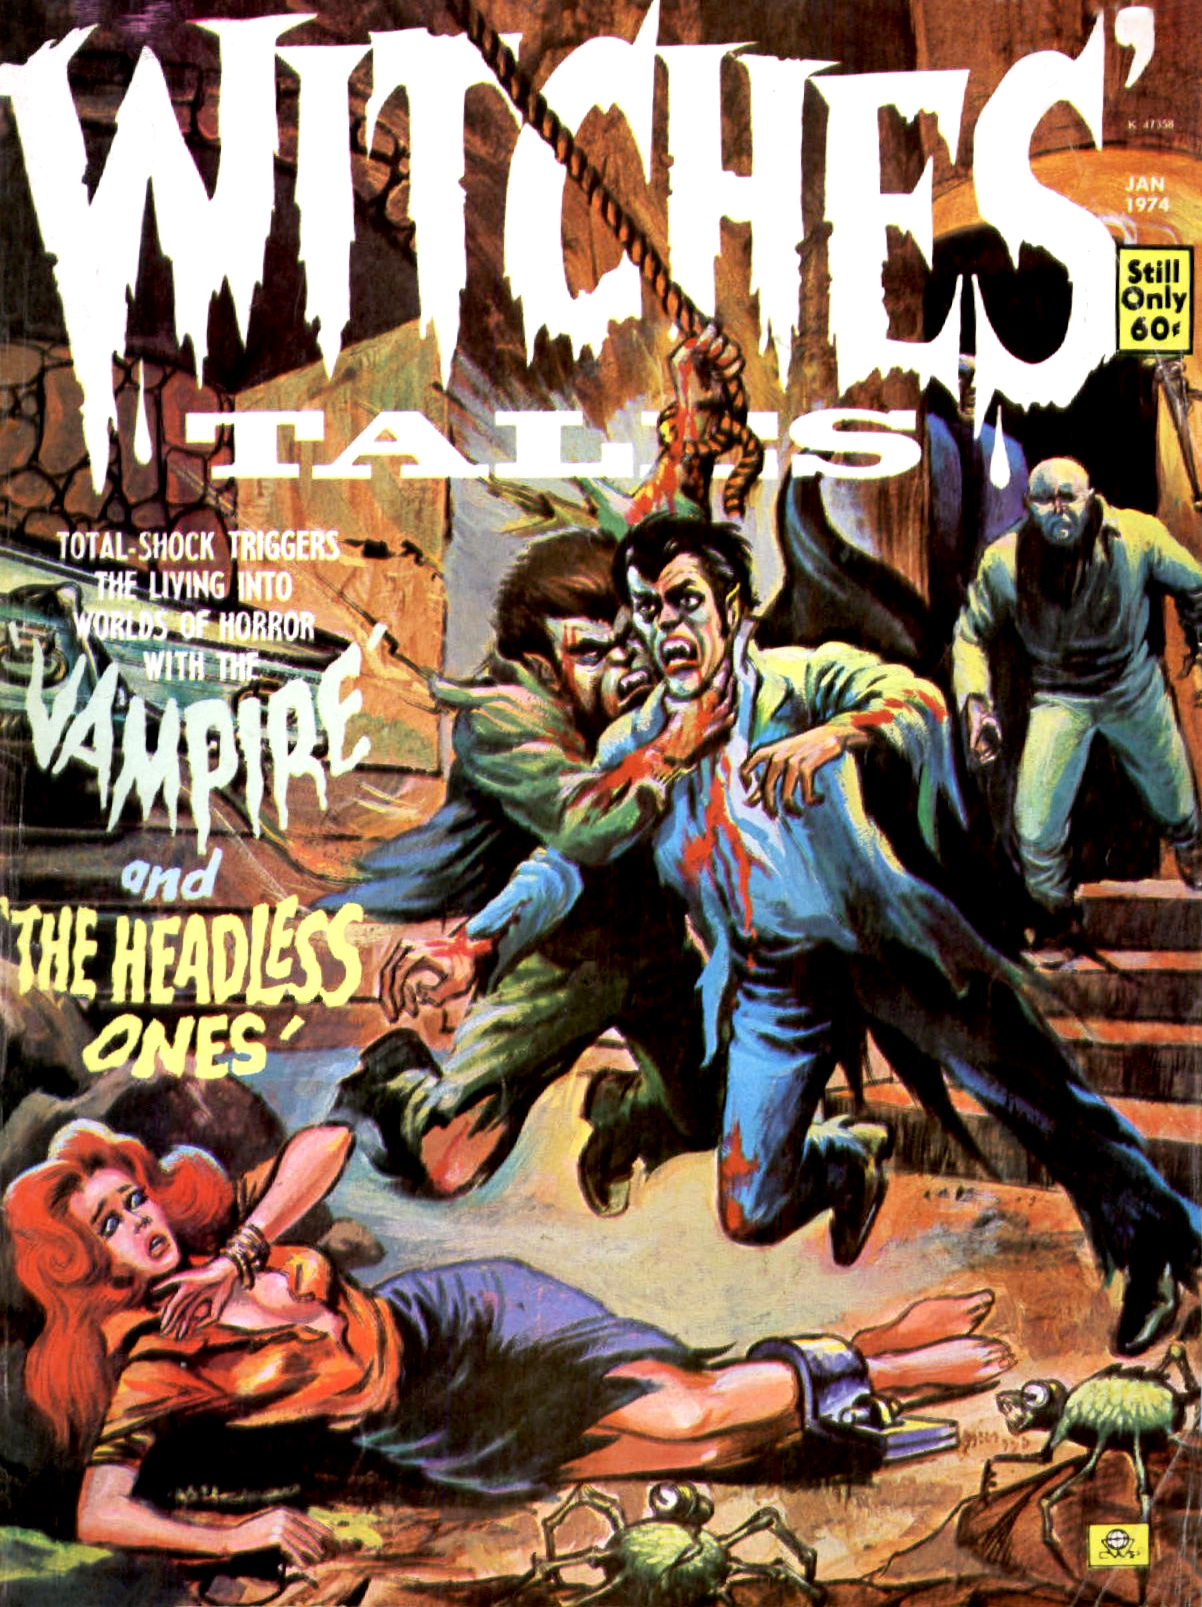 Witches' Tales Vol. 6 #1 (Eerie Publications 1974)